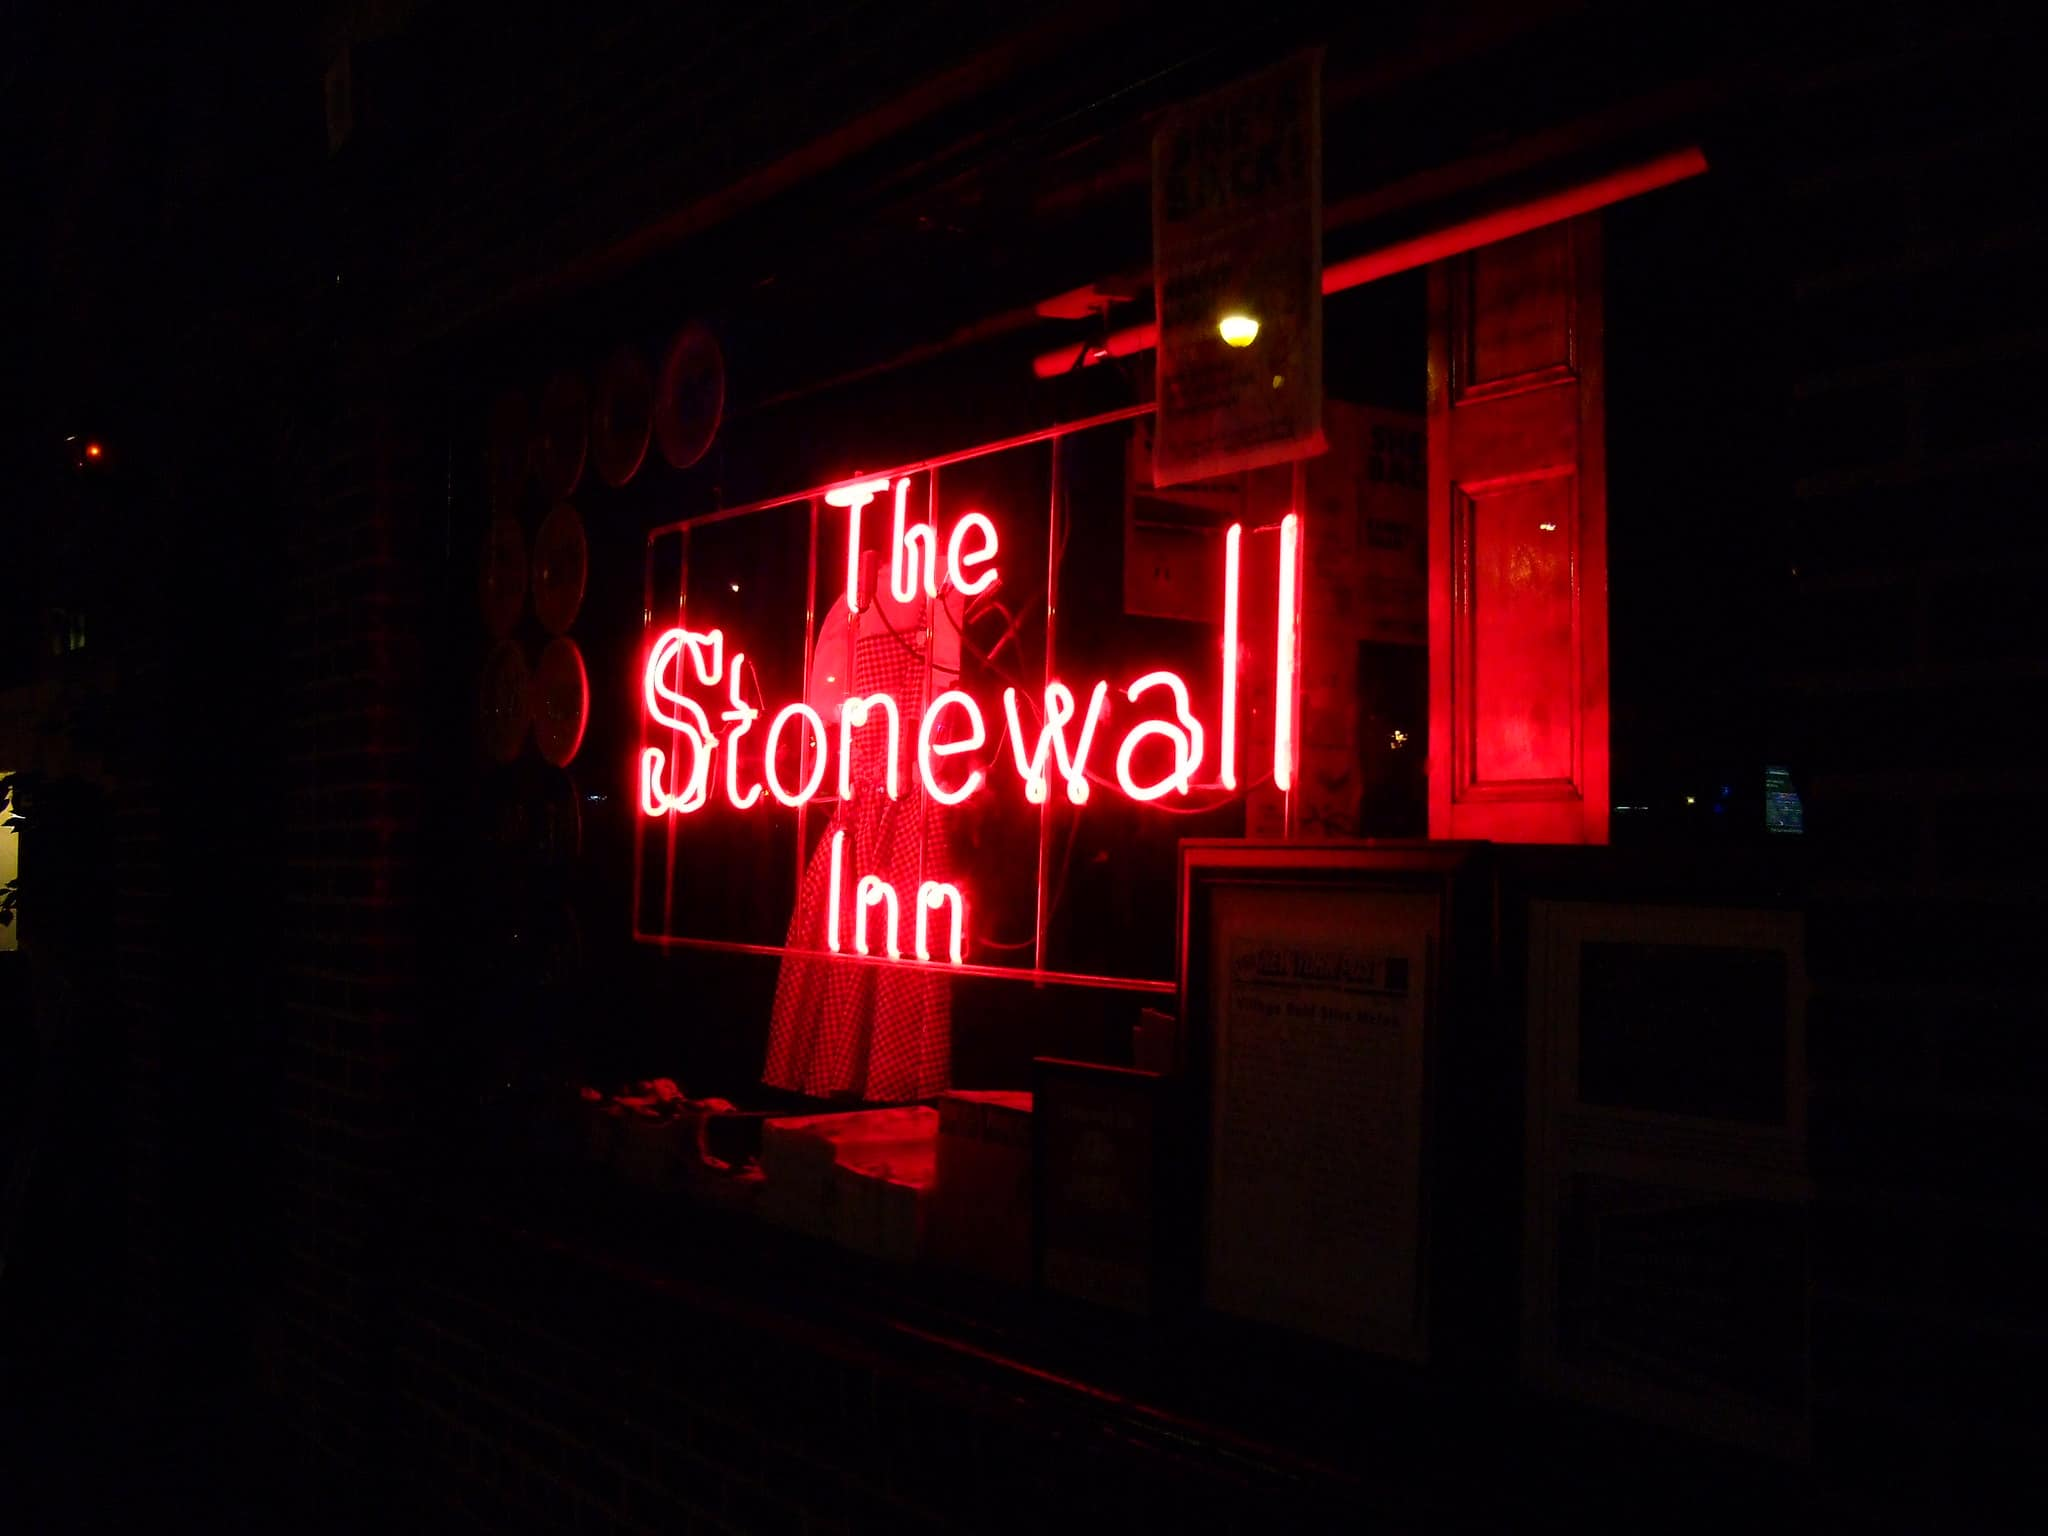 Cartel del bar The Stonewall Inn